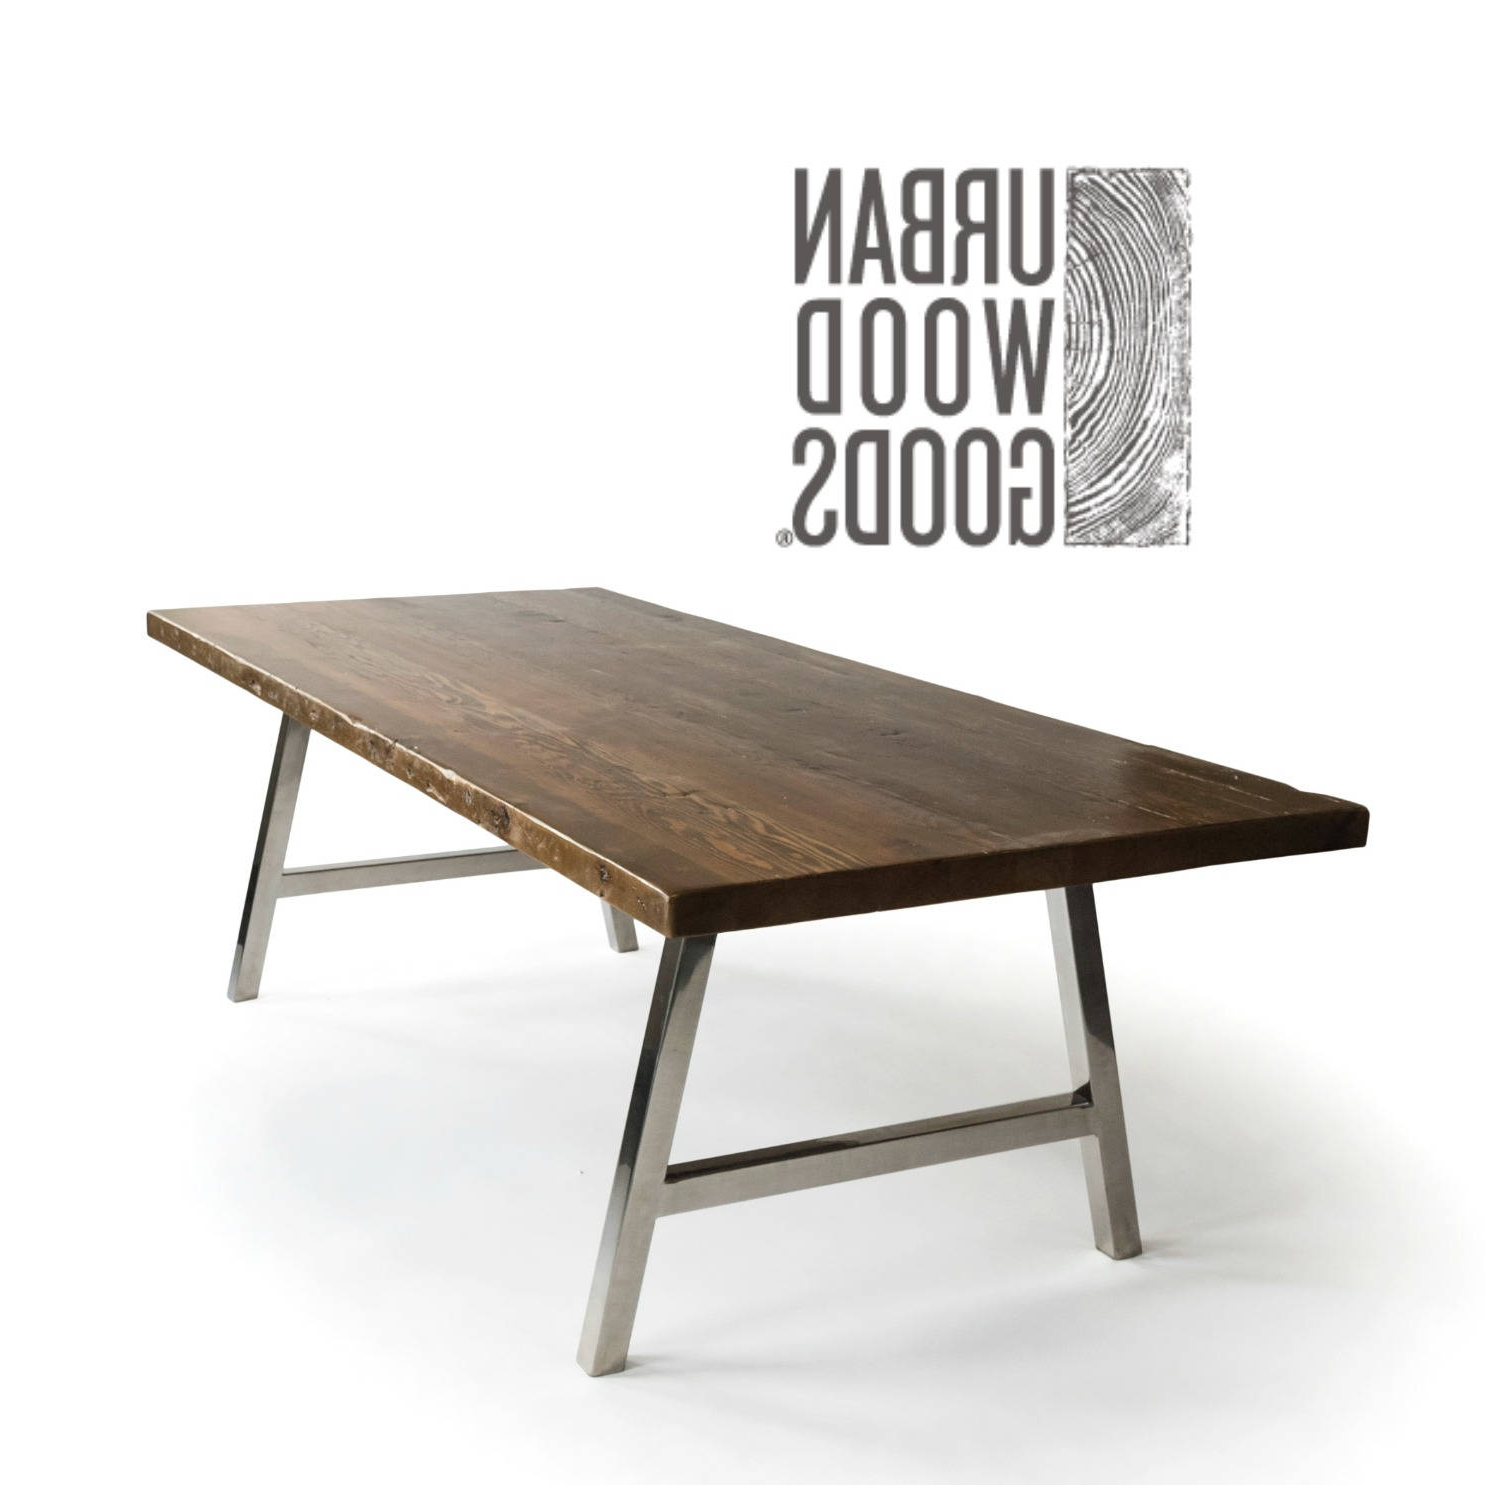 Dining Tables With Brushed Stainless Steel Frame Pertaining To Popular Modern Architect A Frame Dining Table With Brushed Stainless Steel Base, (View 14 of 30)